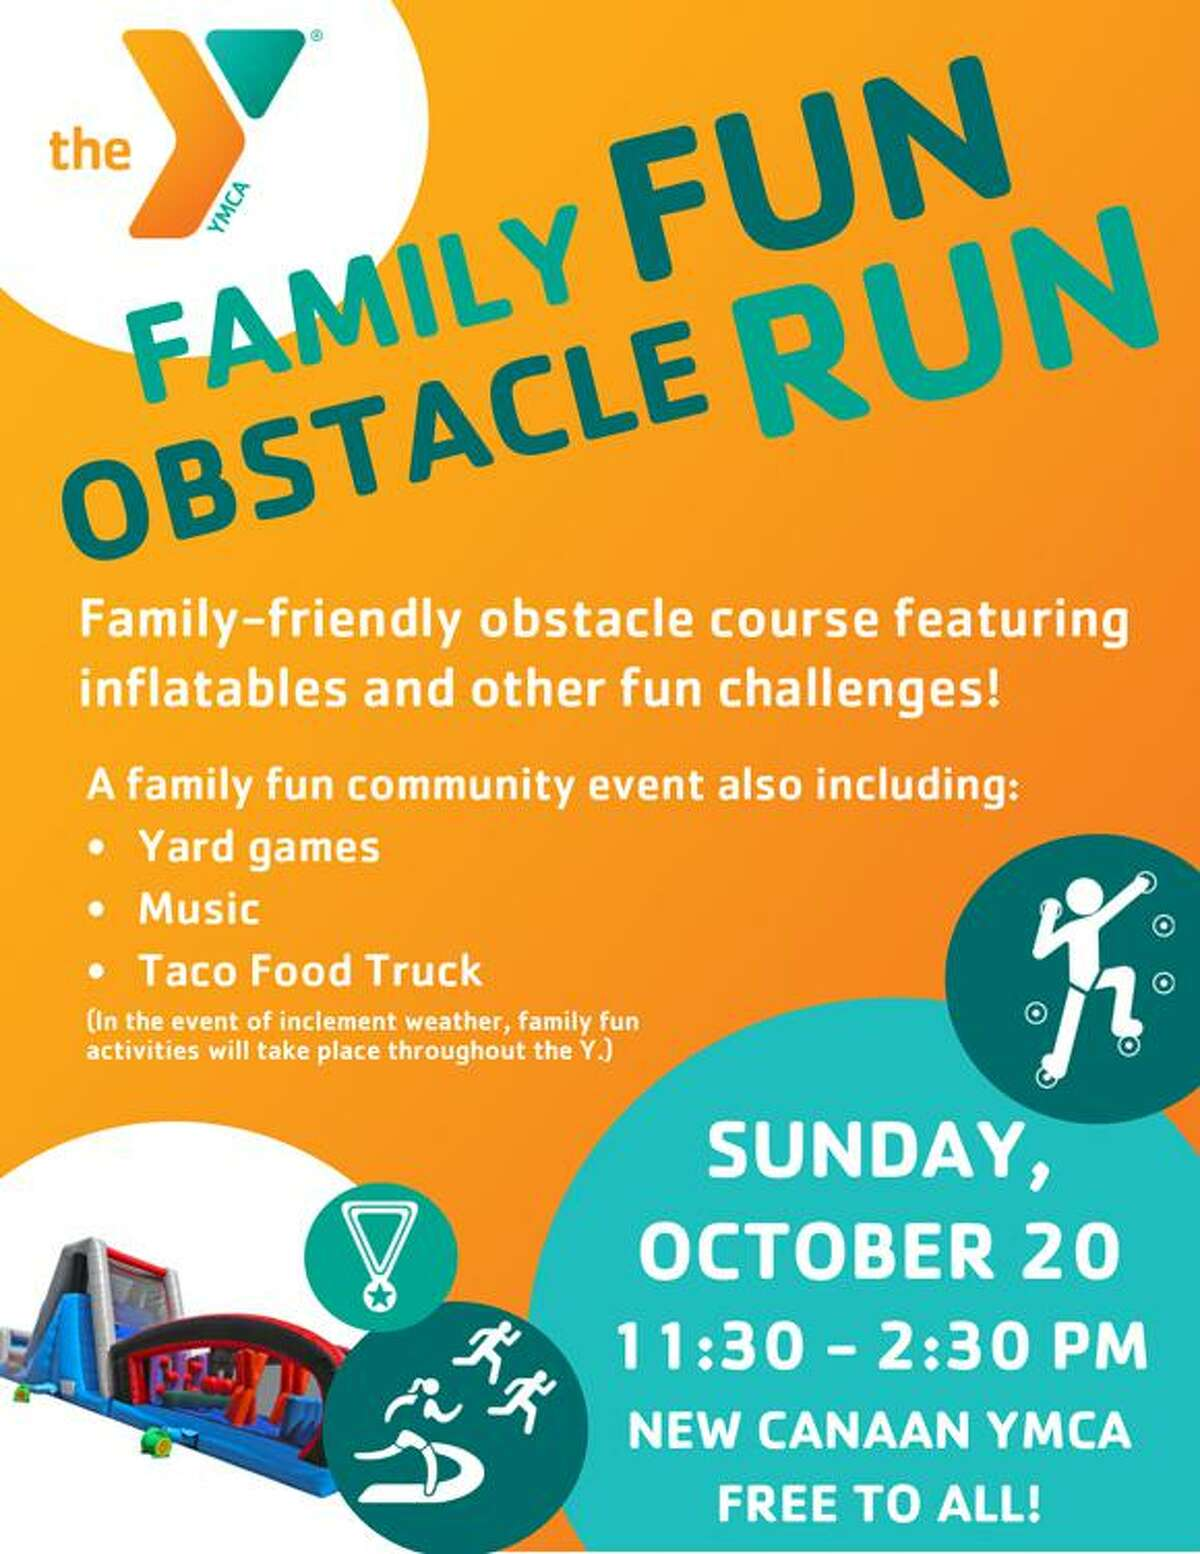 The New Canaan YMCA will host a family-friendly obstacle course on Sunday, Oct. 20.